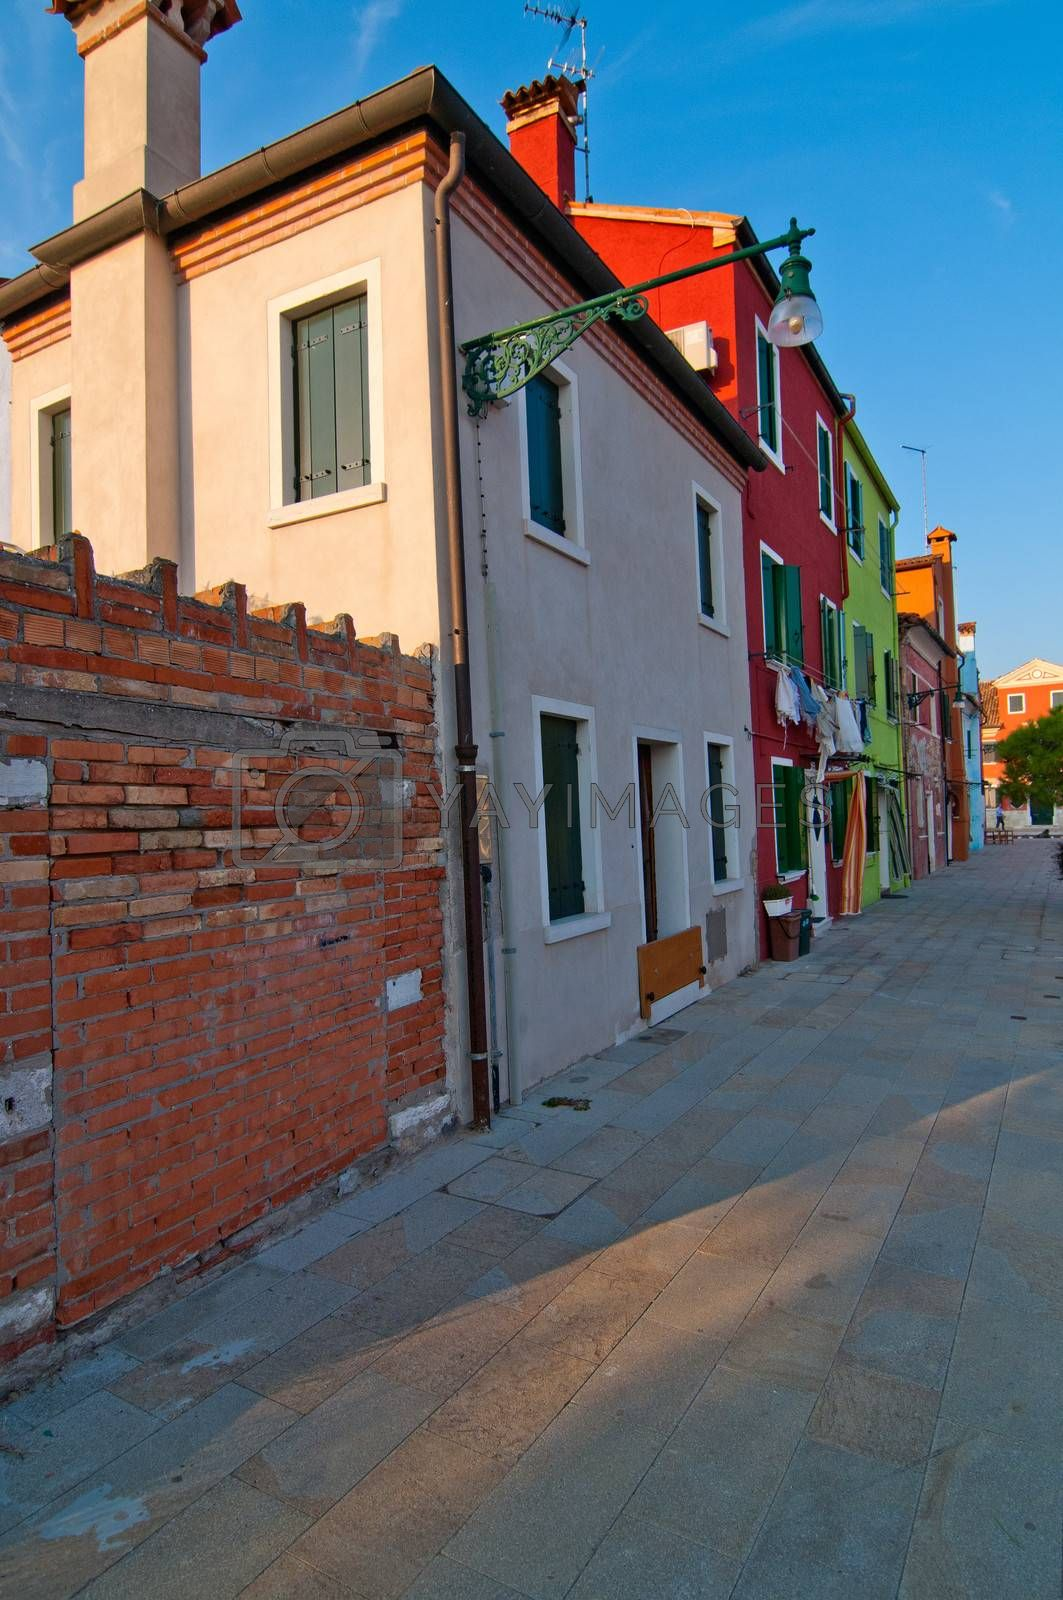 Italy Venice Burano island with traditional colorful houses